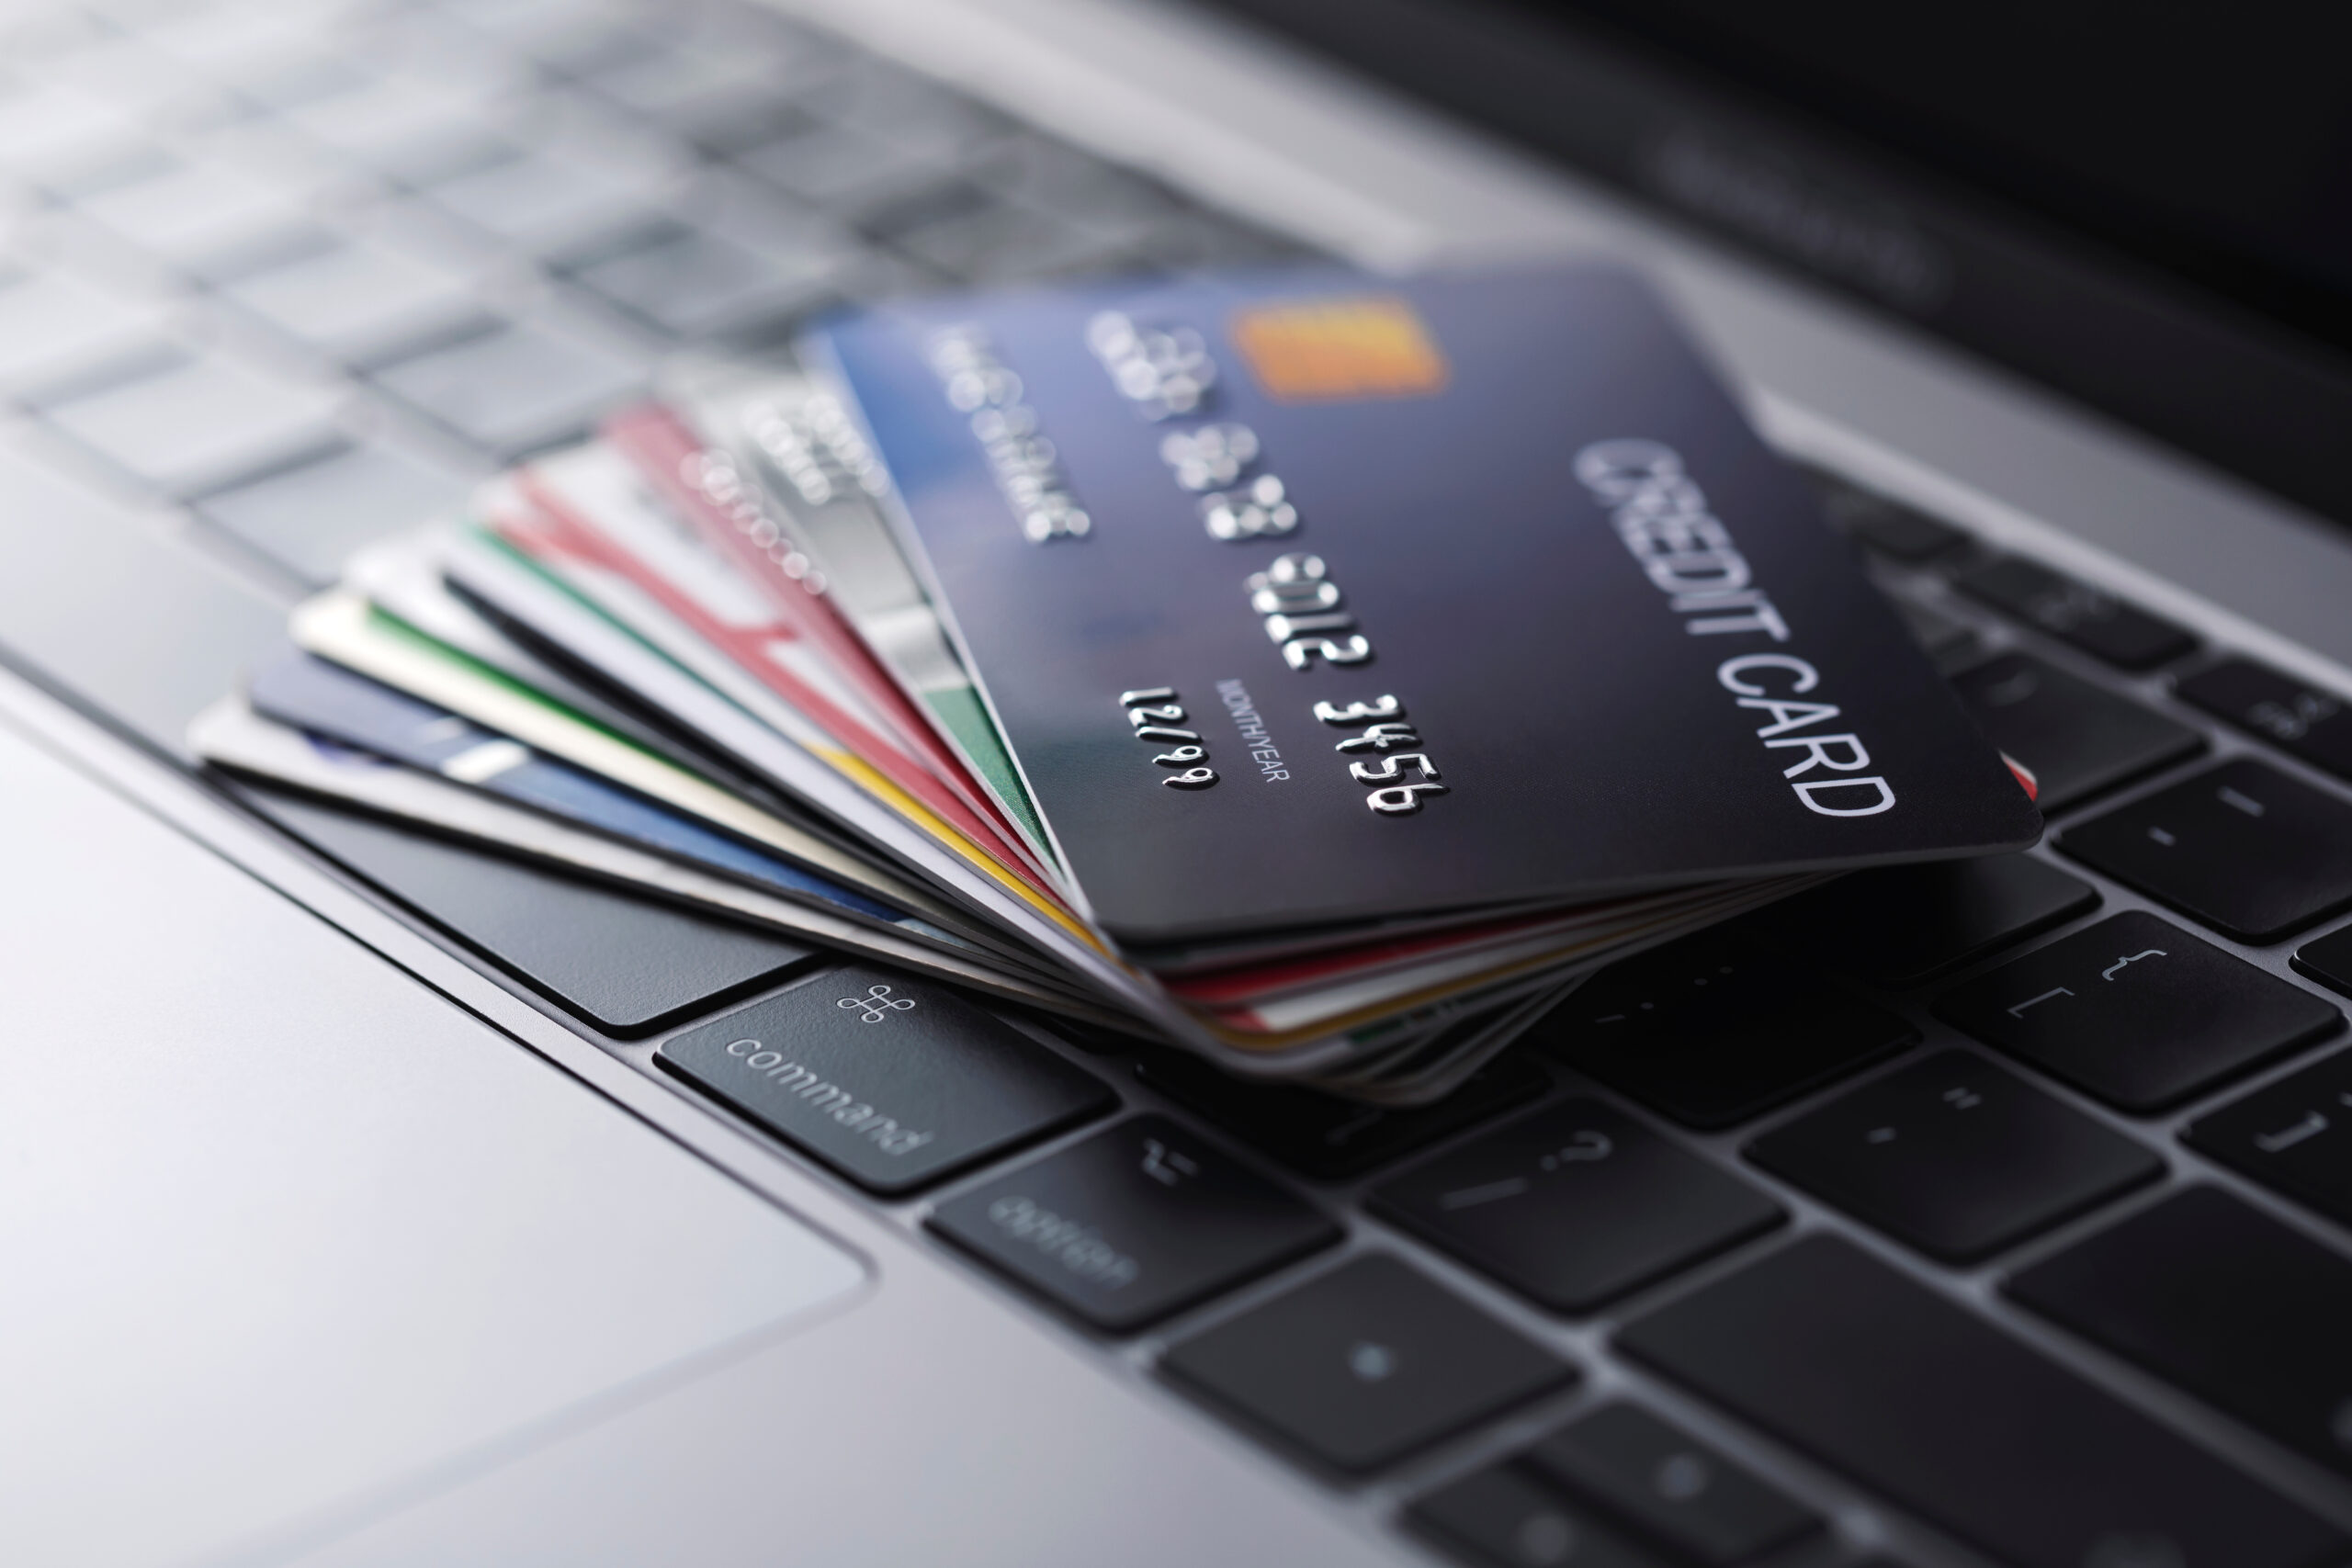 Online credit card payment for purchases from online stores and online shopping - Prudent Financial Solutions